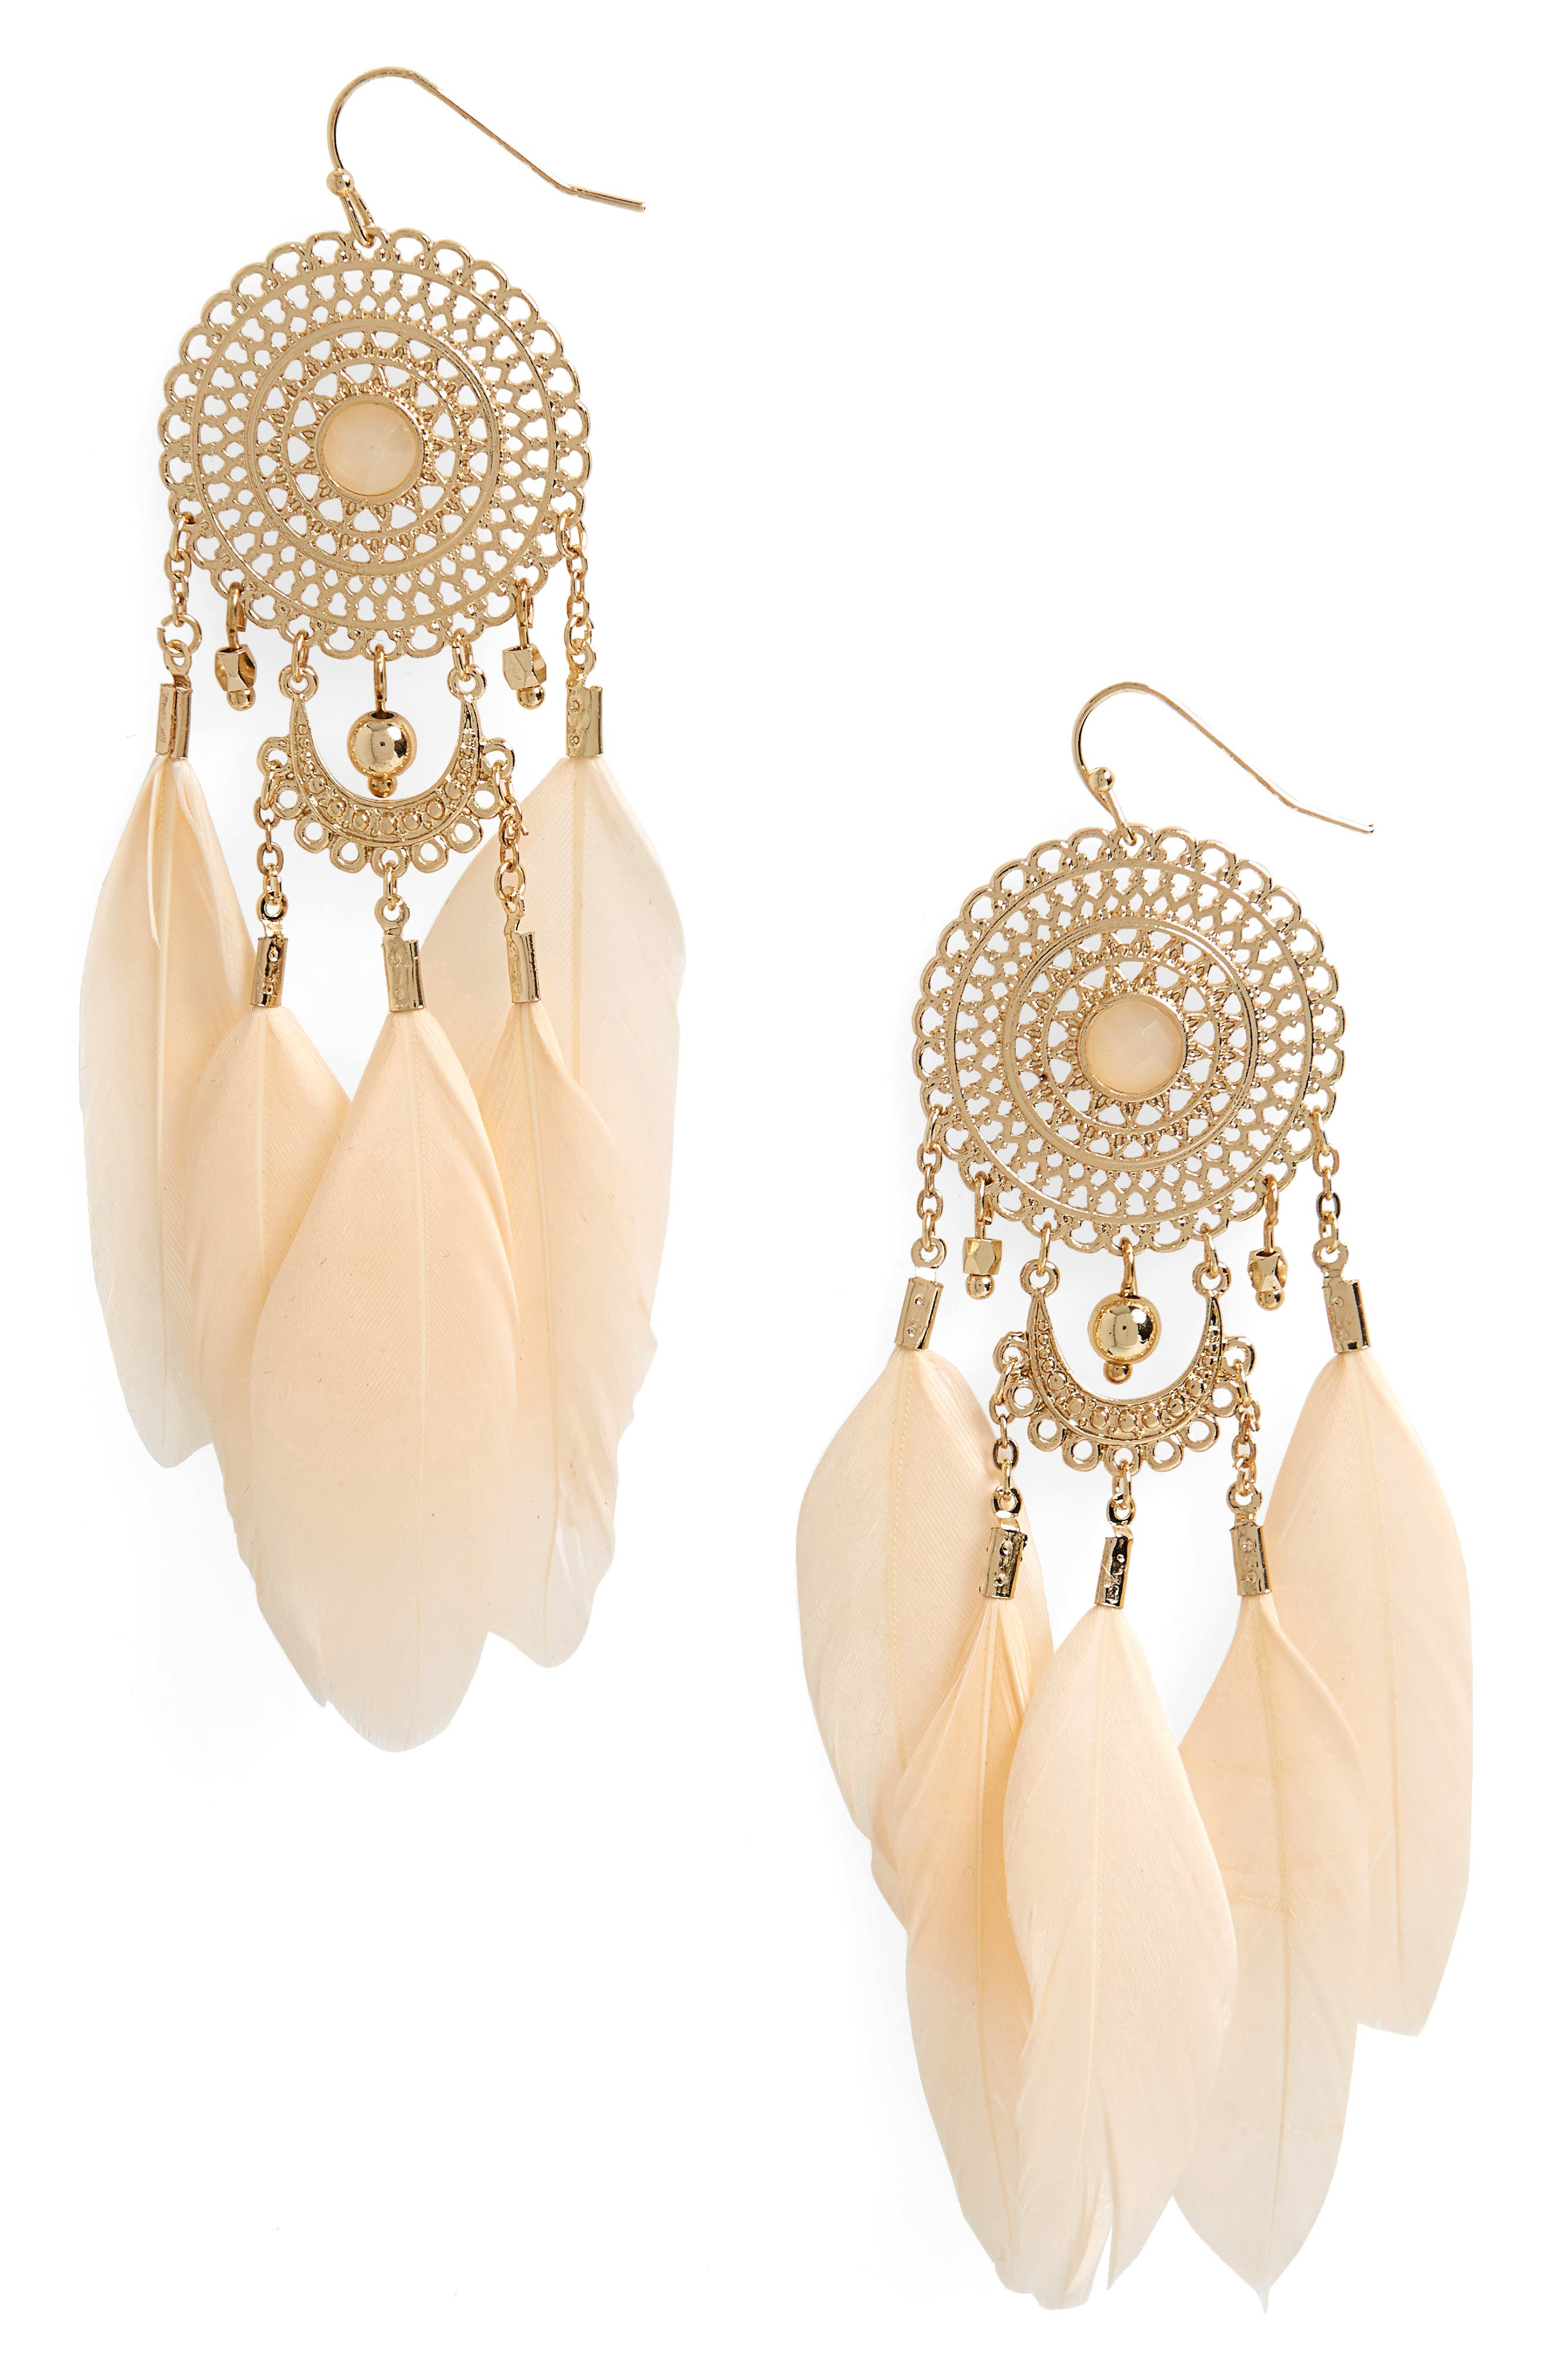 Feather Drop Earrings,                             Main thumbnail 1, color,                             Gold/ Blush